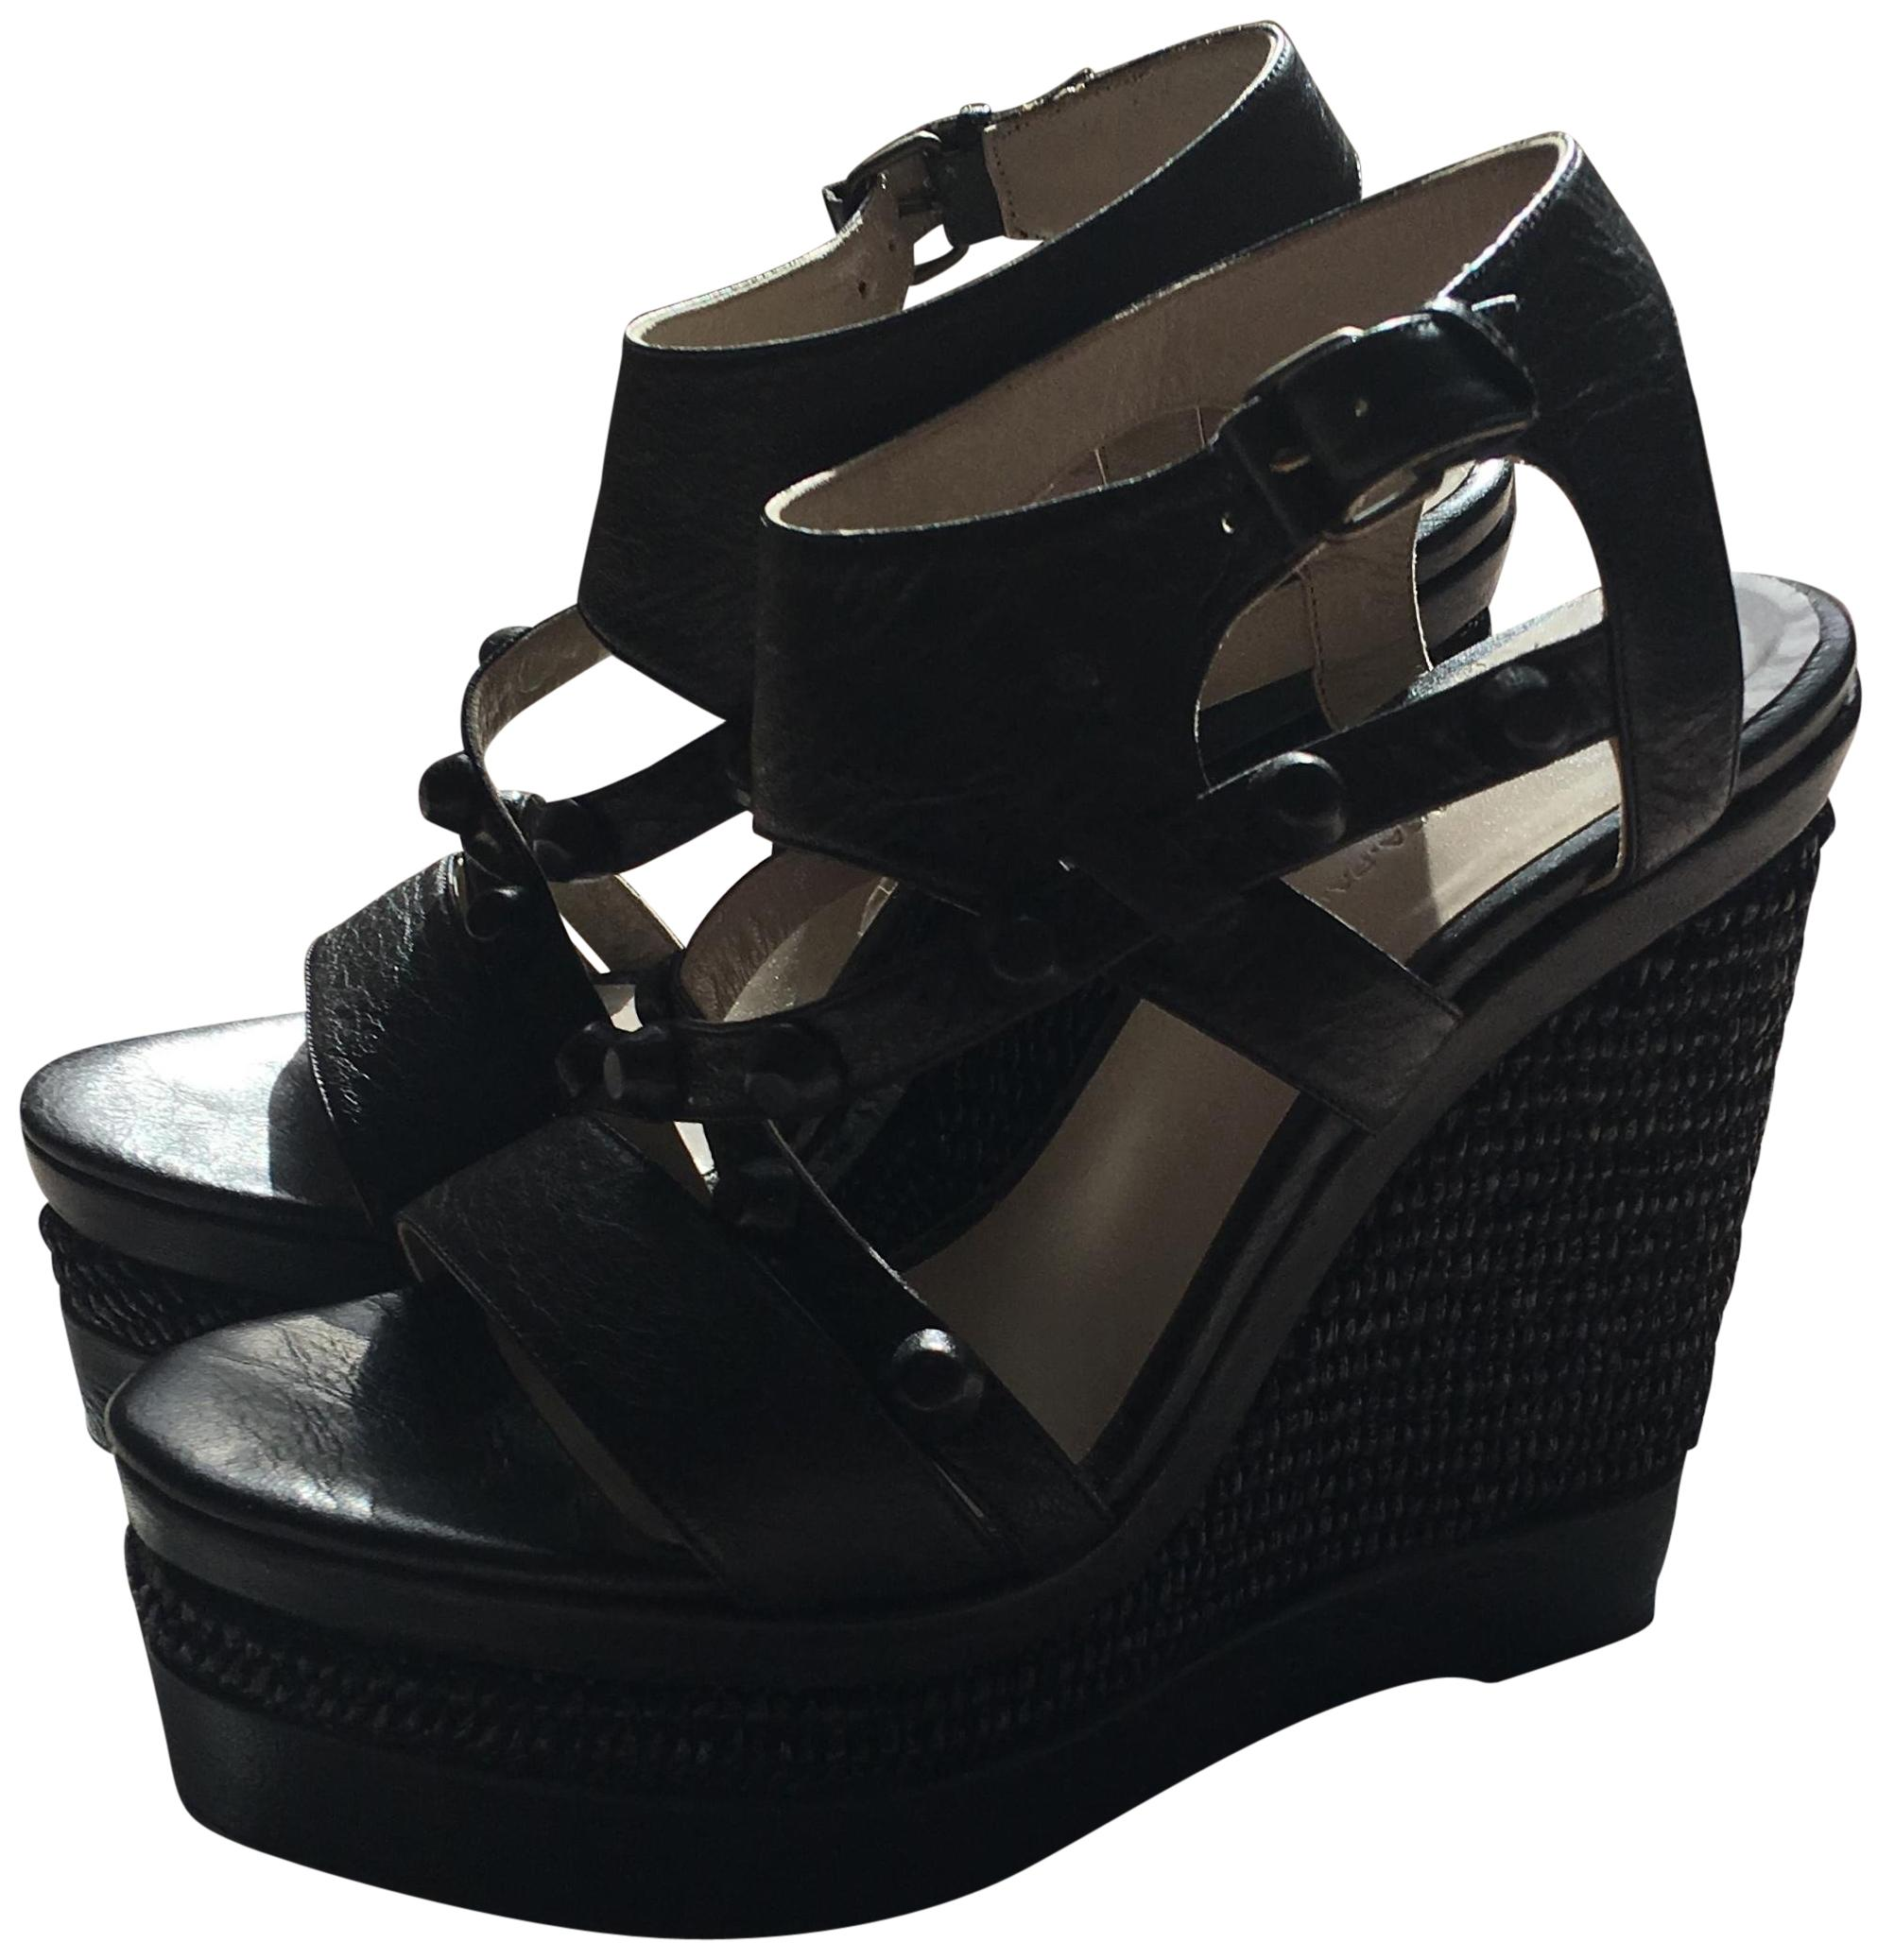 Balenciaga Black Studd Details In Front and Woven High Wedges Size EU 39 (Approx. US 9) Regular (M, B)